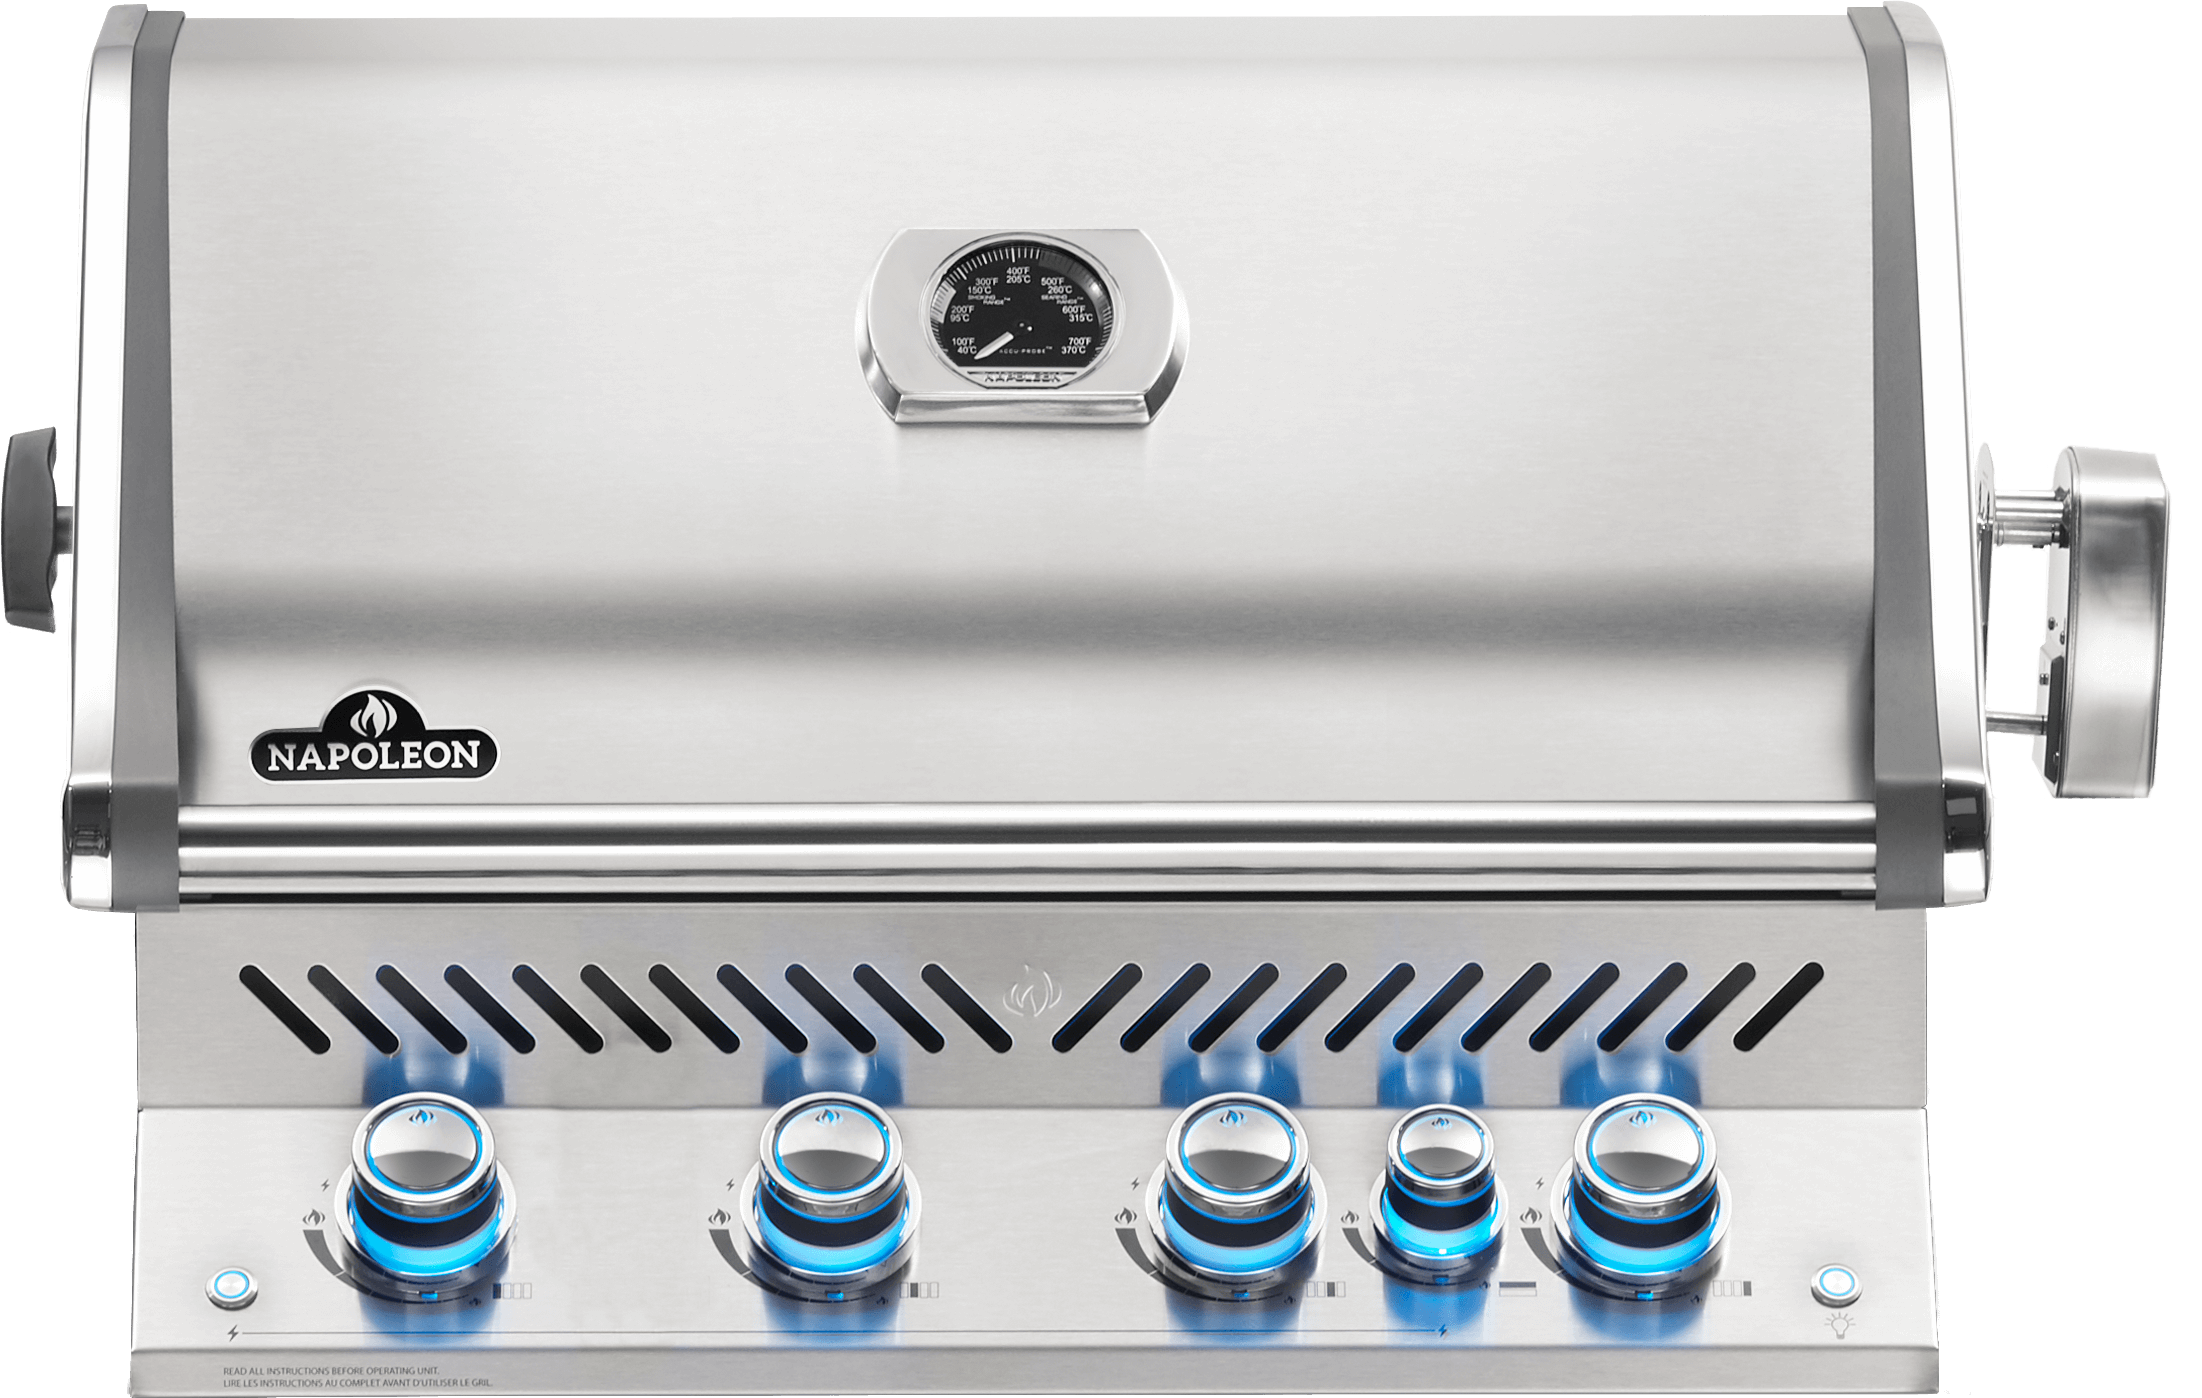 Napoleon Built-in Prestige PRO™ 500 Natural Gas Grill Head with Infrared Rear Burner, Stainless Steel